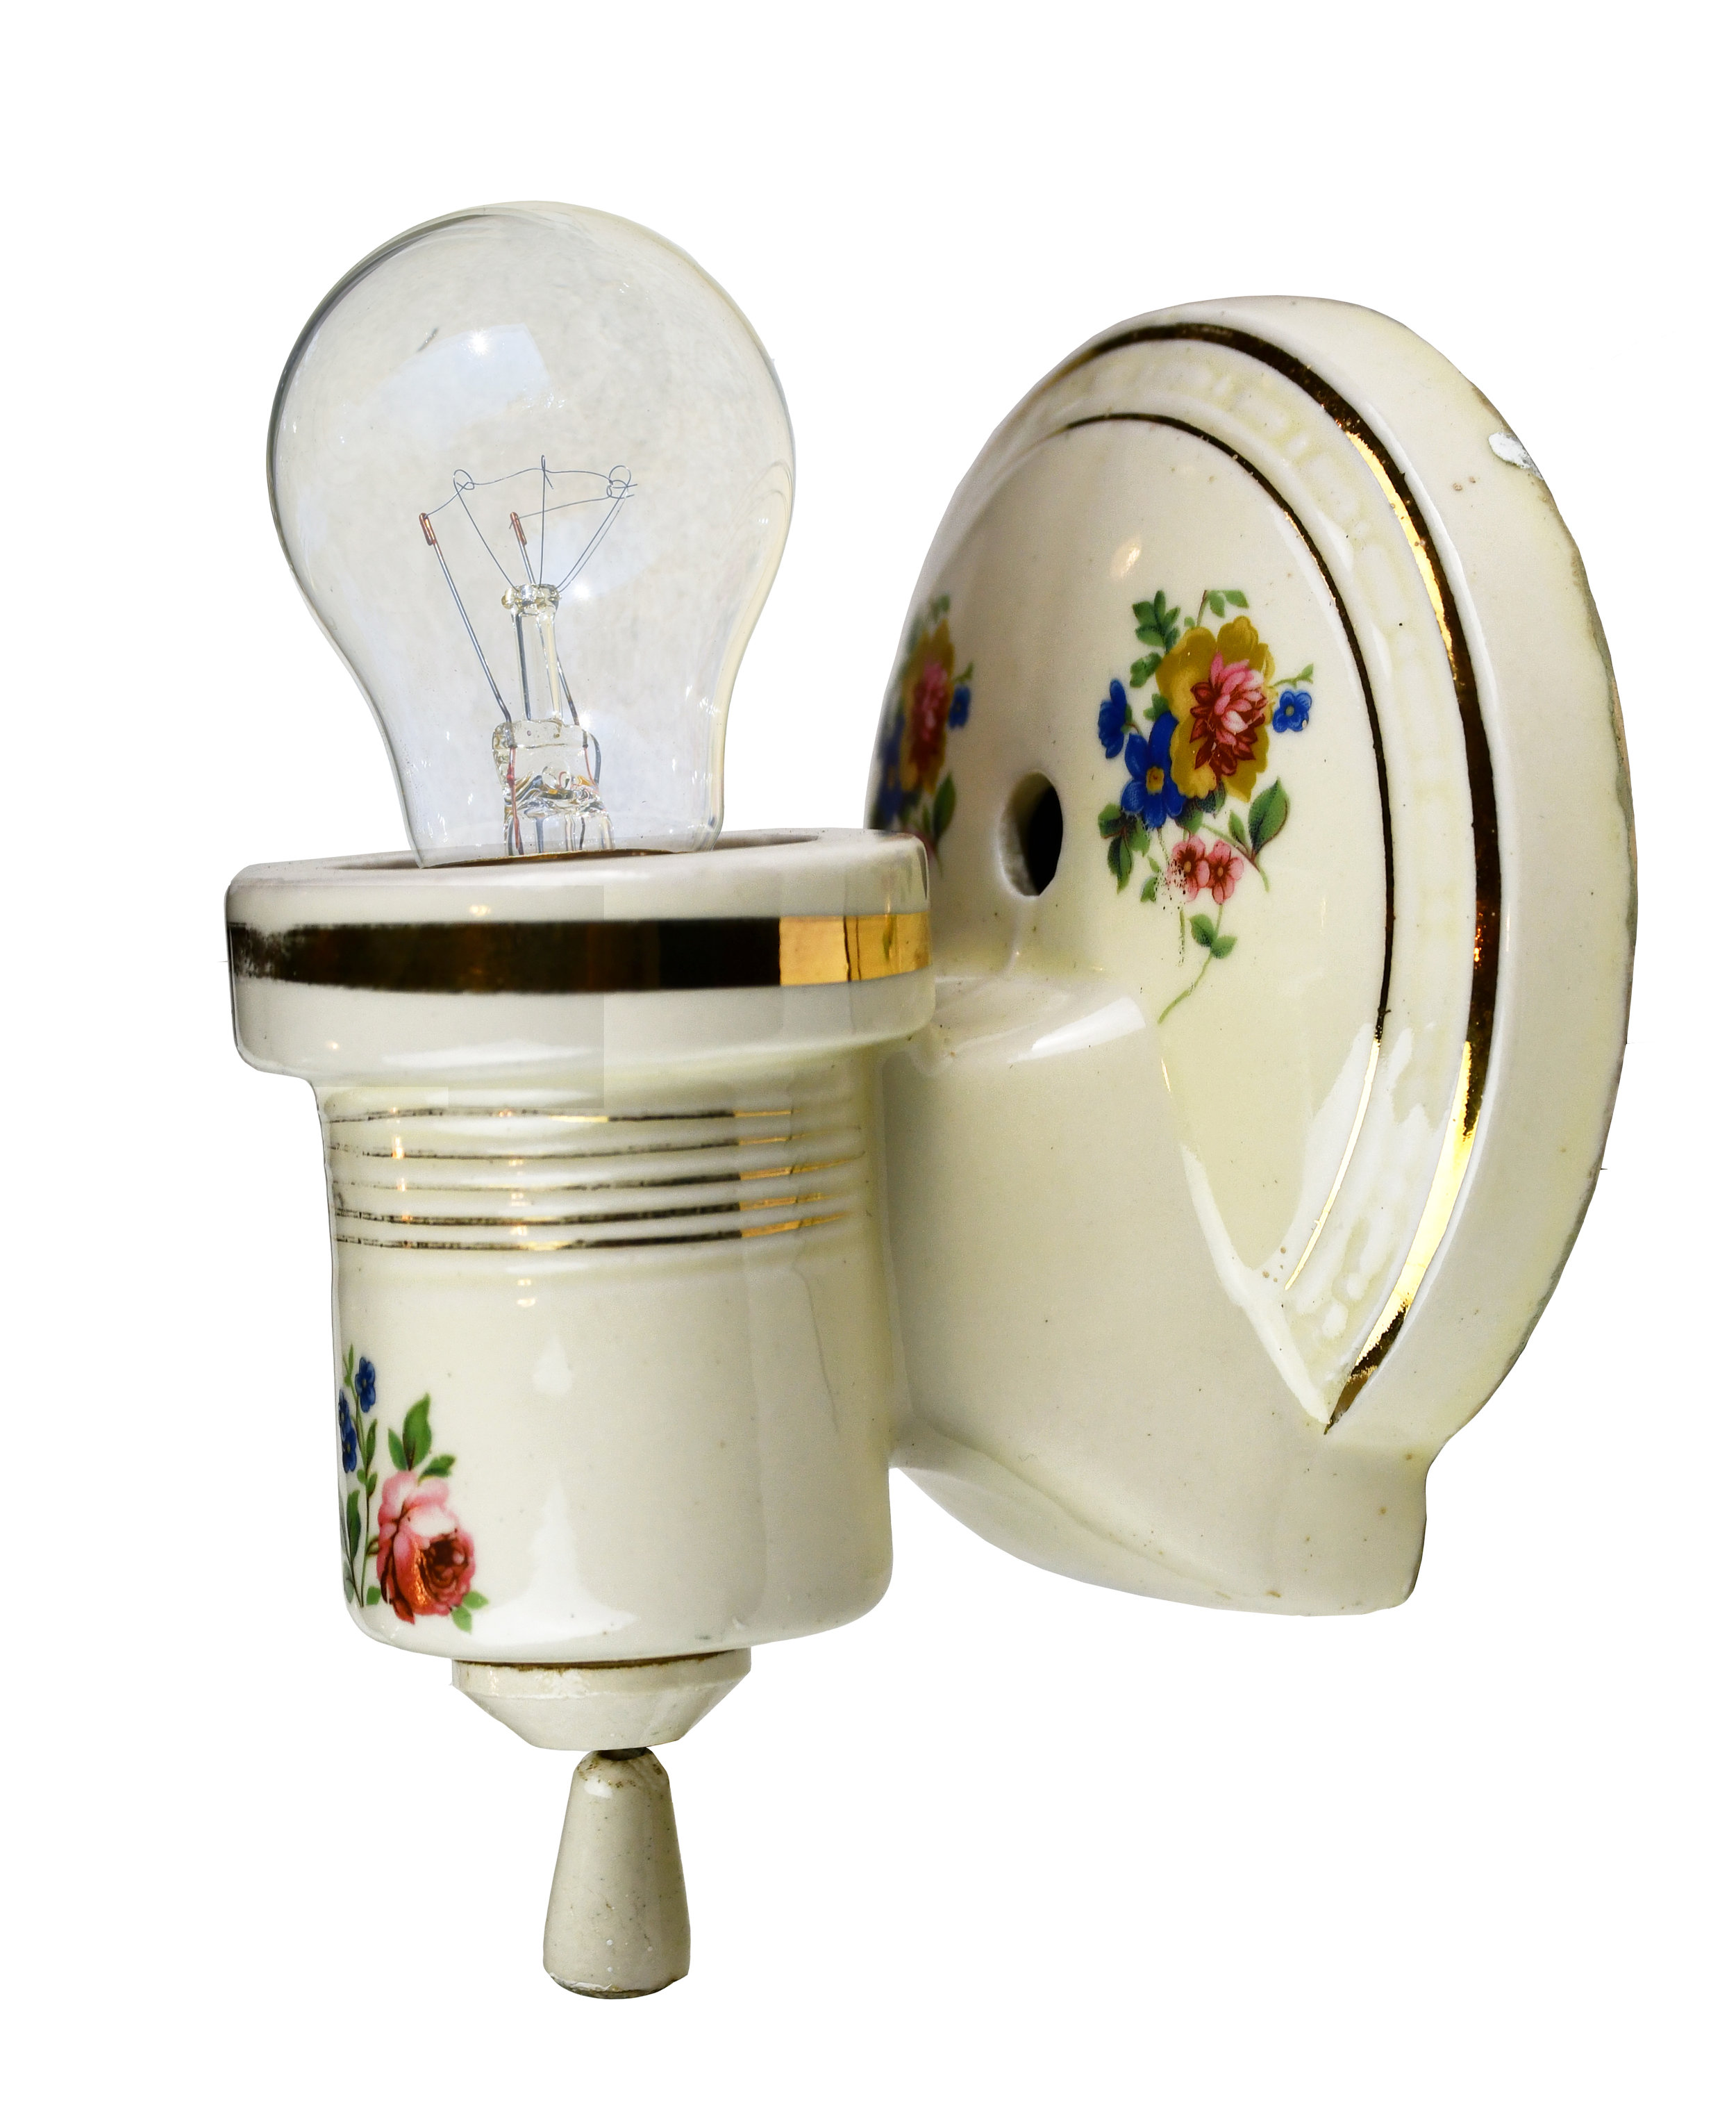 47255-floral-deco-bath-sconce-side.jpg